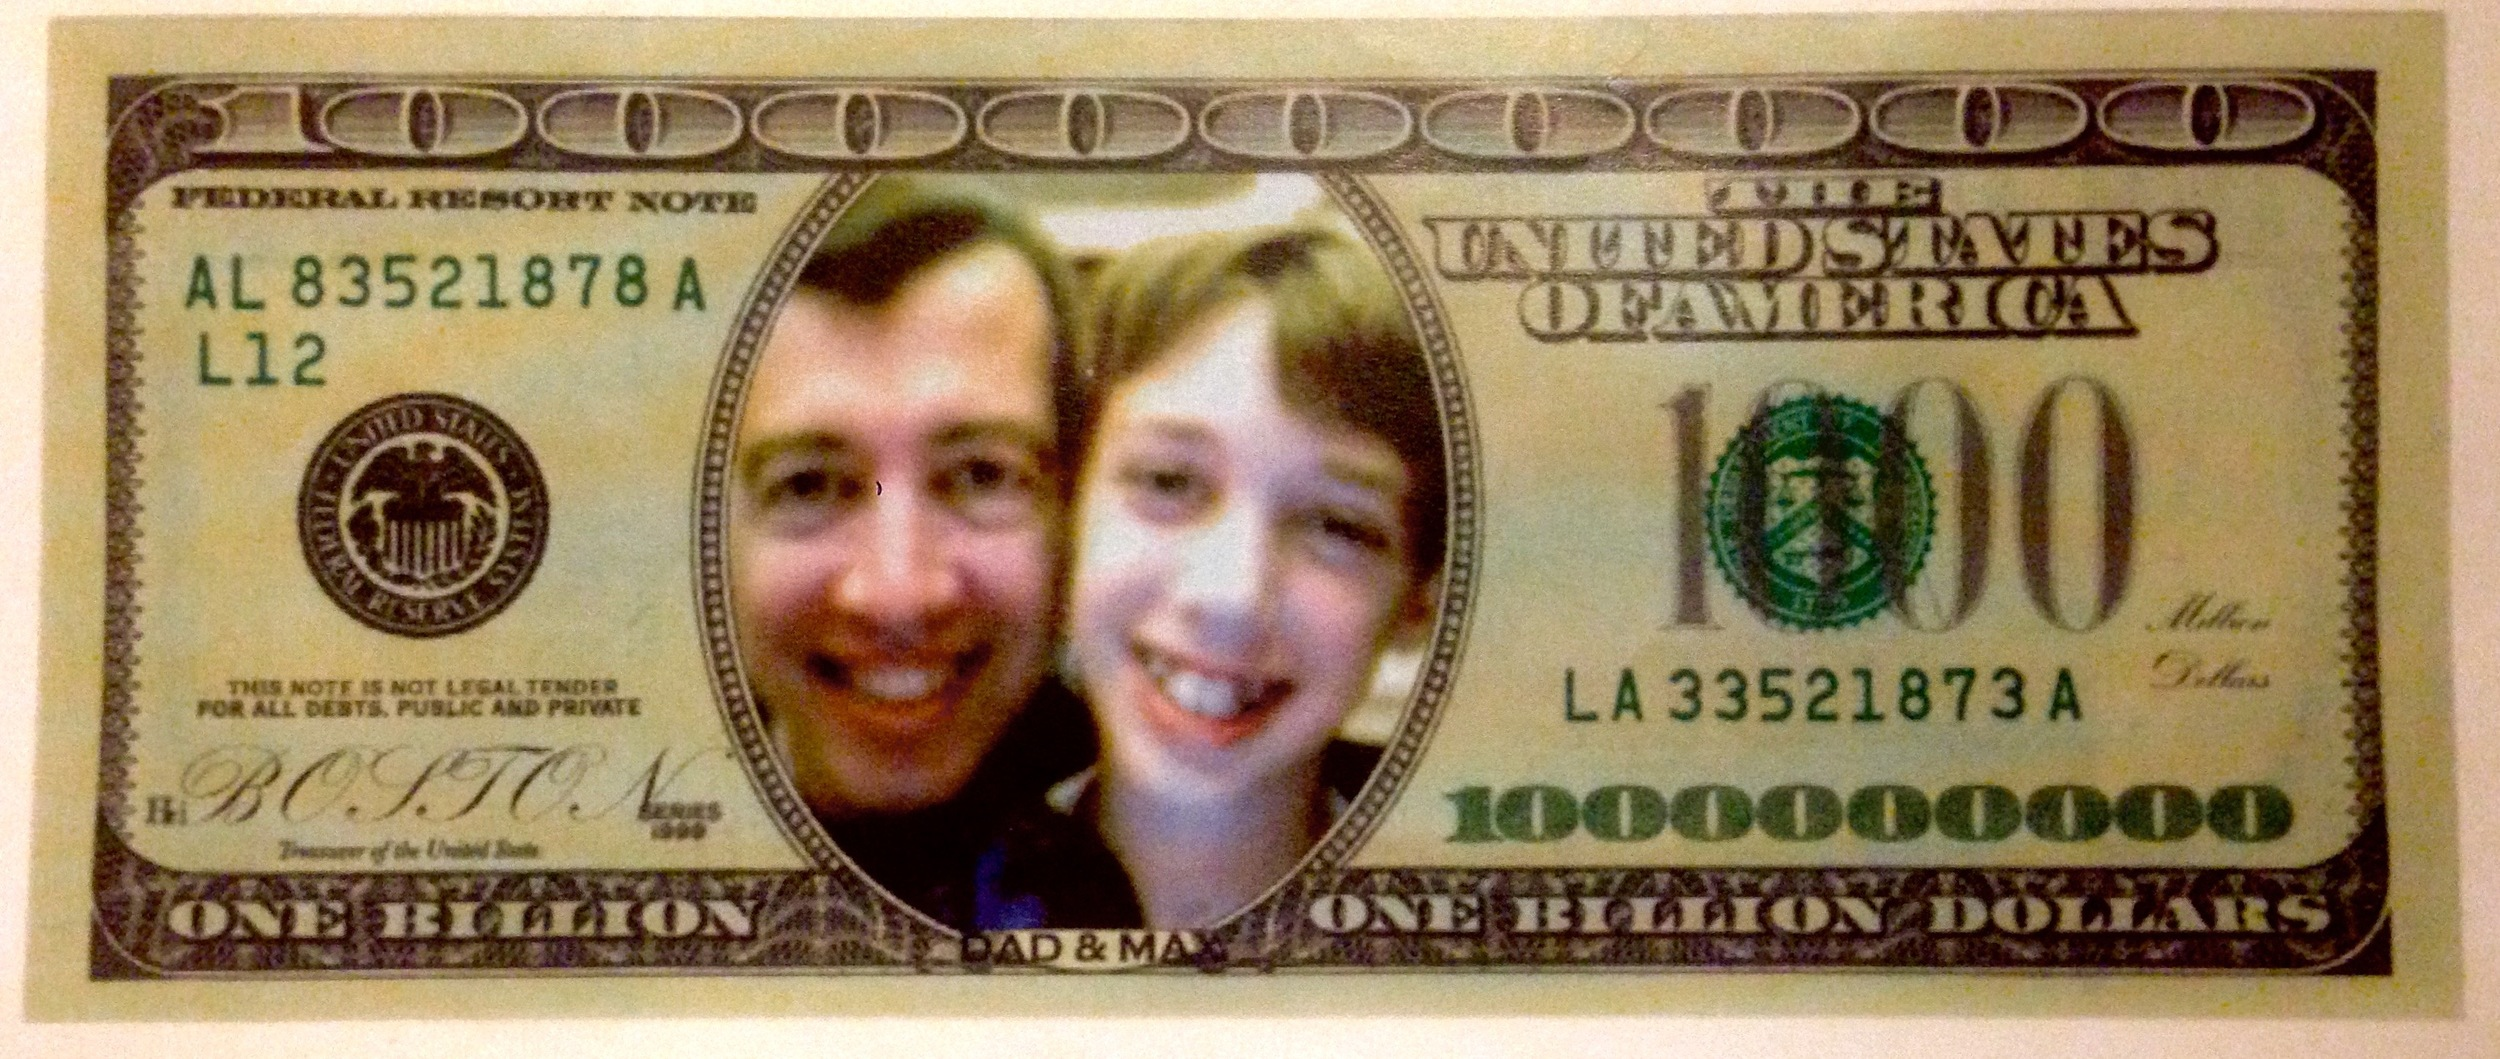 $1,000,000,000 U.S. Mint-issued bill feat. me and Dad, circa 1999.